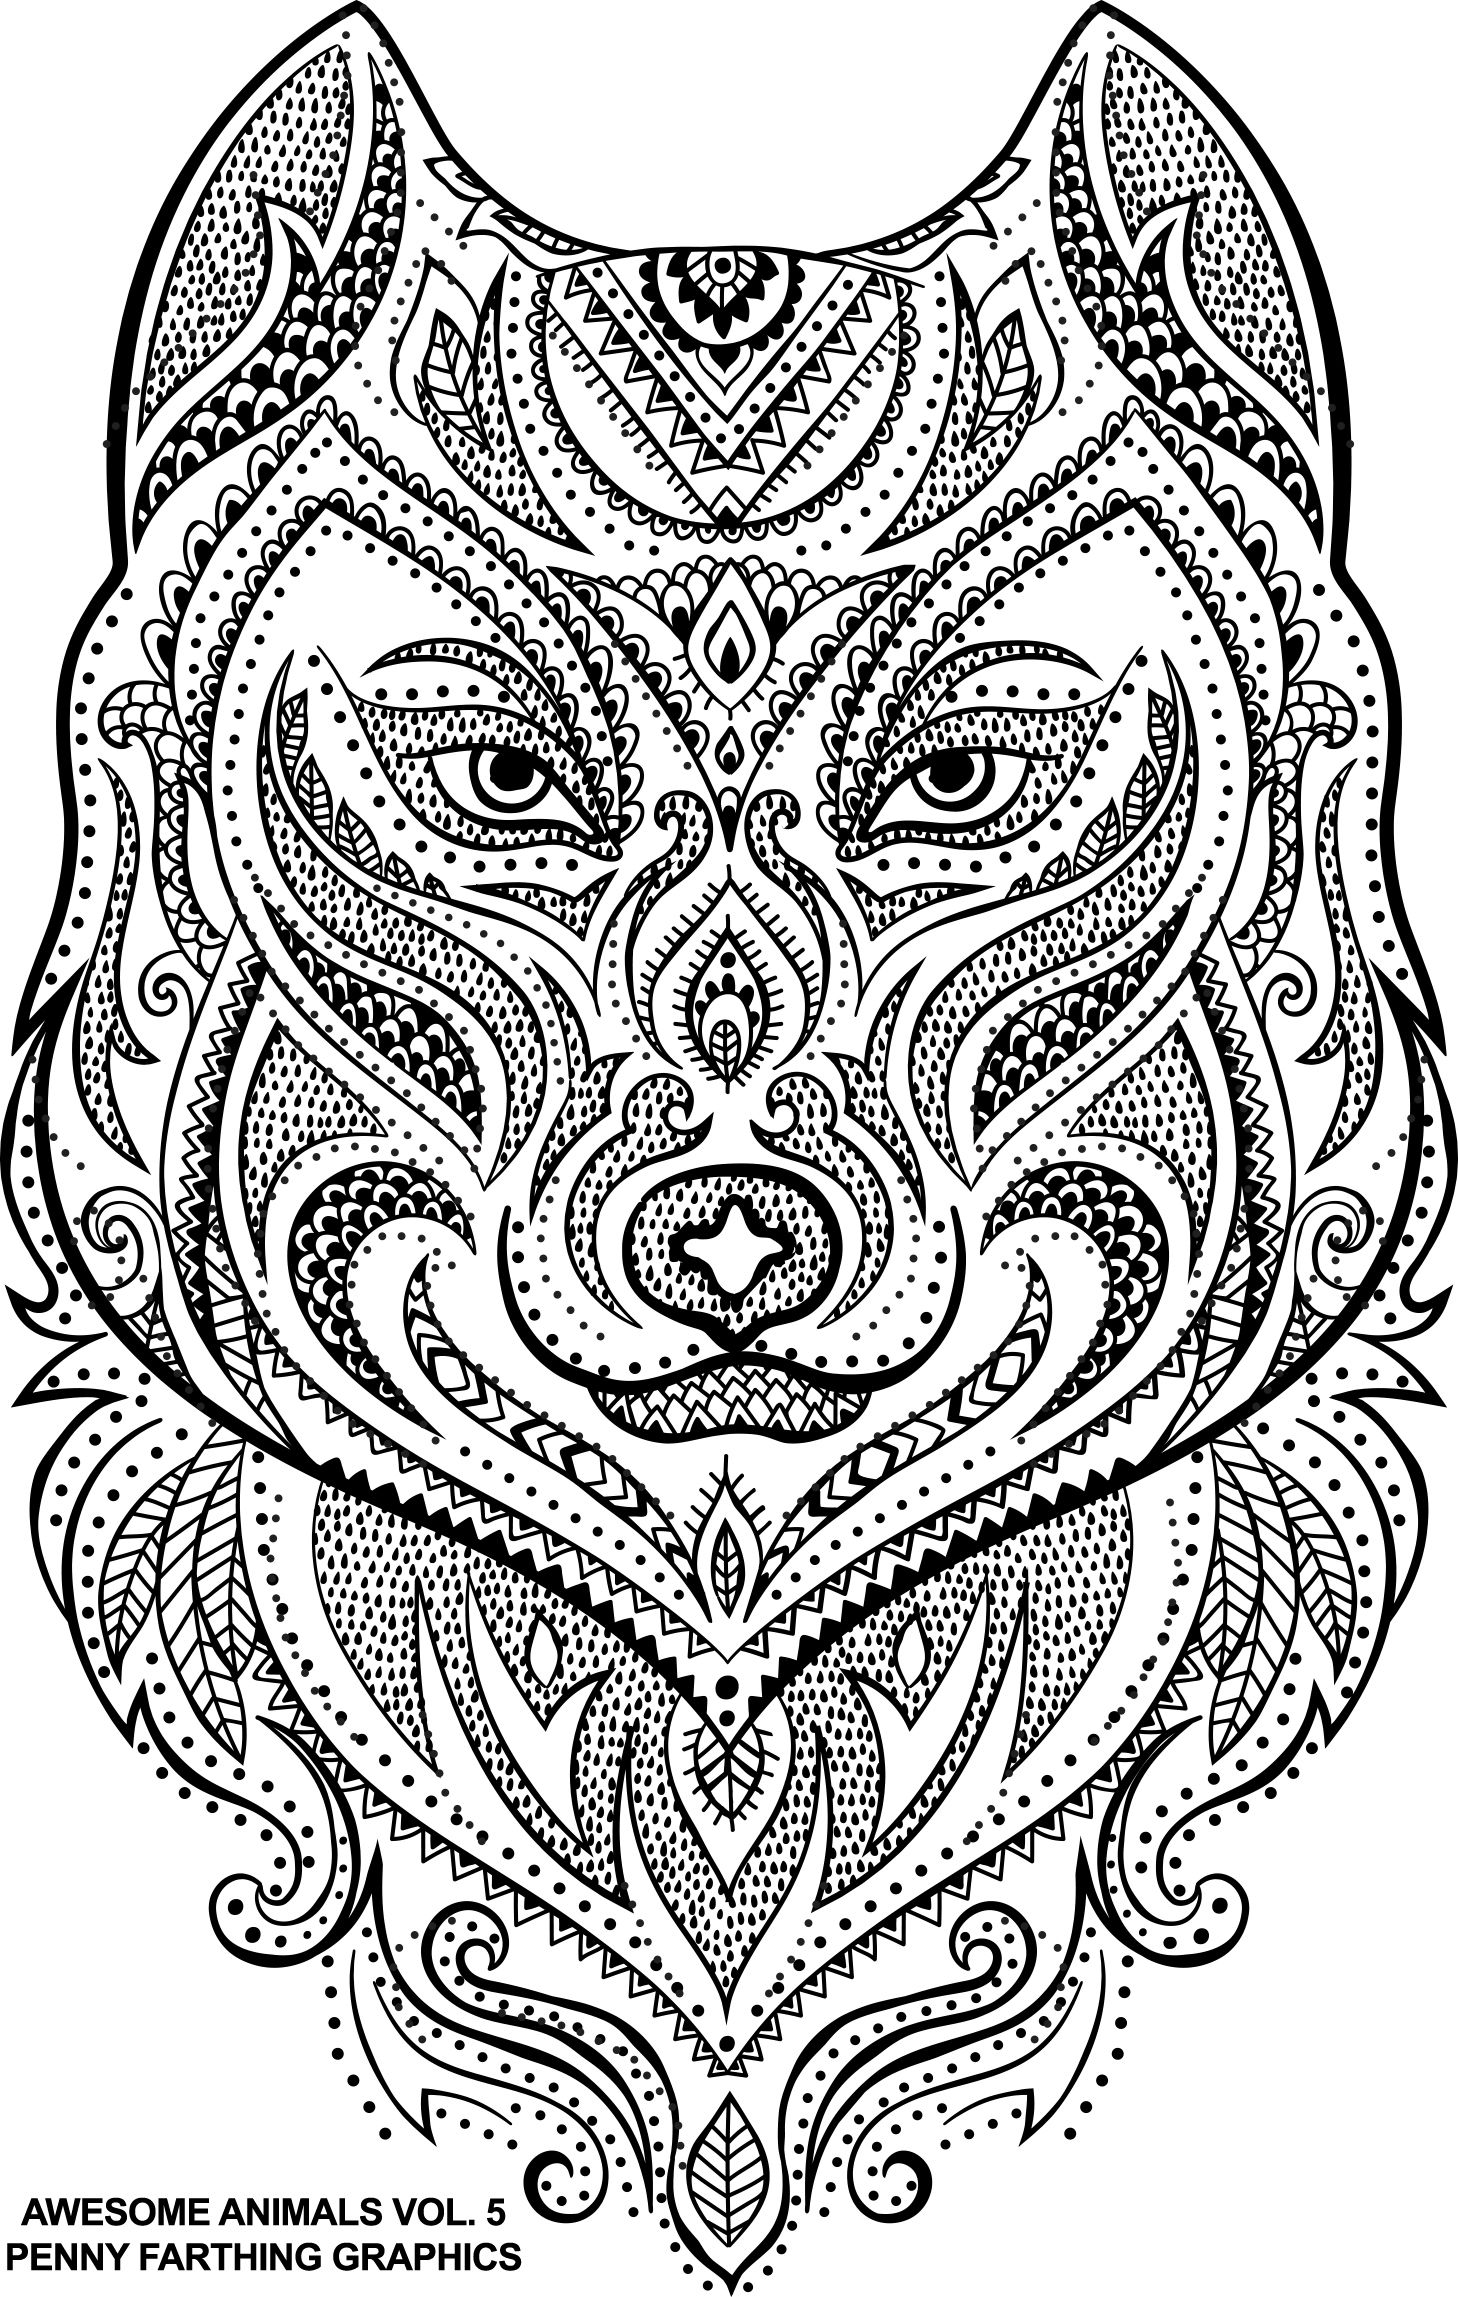 The Wolf From Awesome Animals 5 Animal Coloring Pages